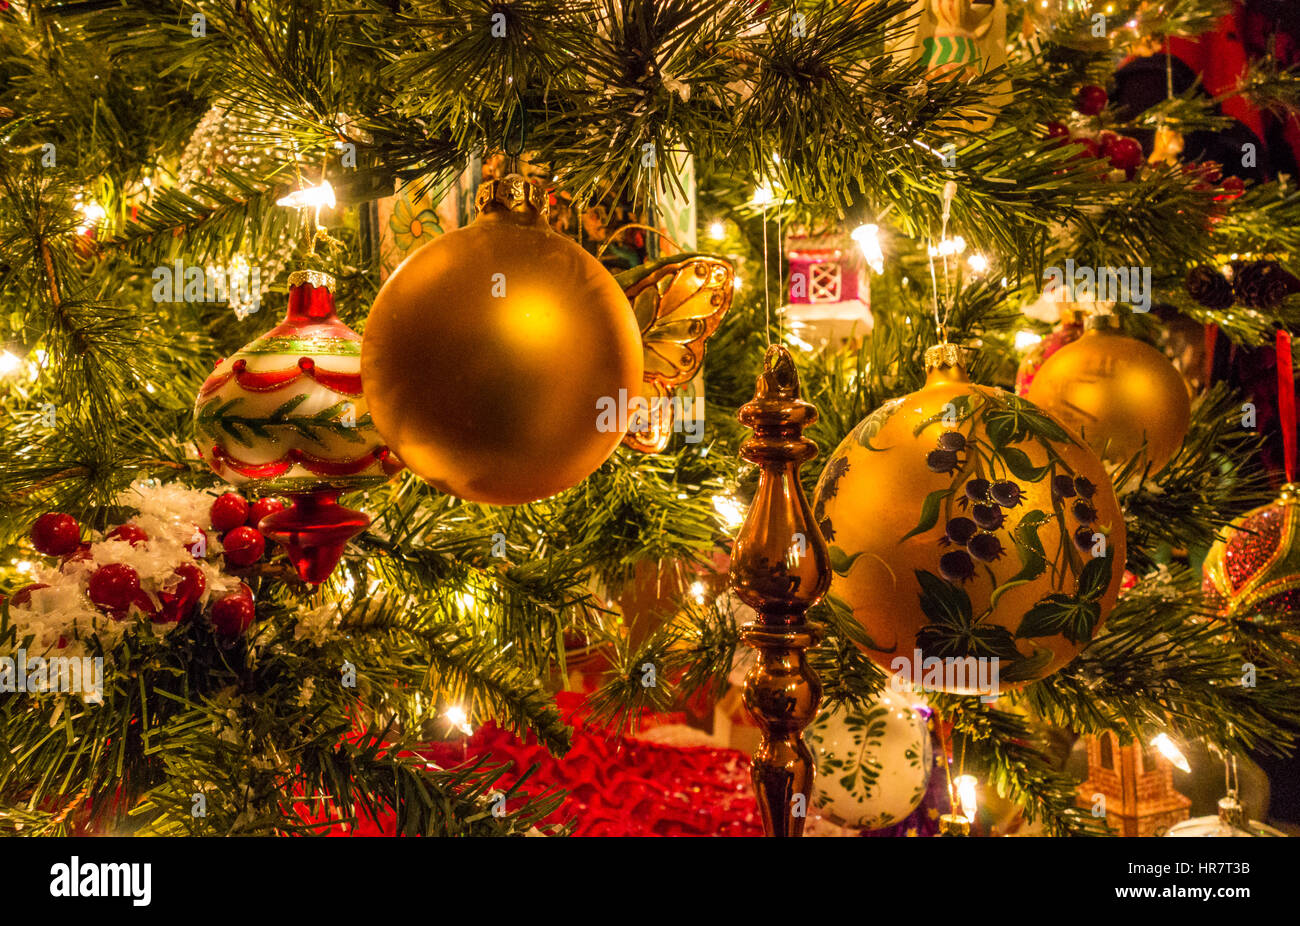 Christmas decorations on a tree. Stock Photo